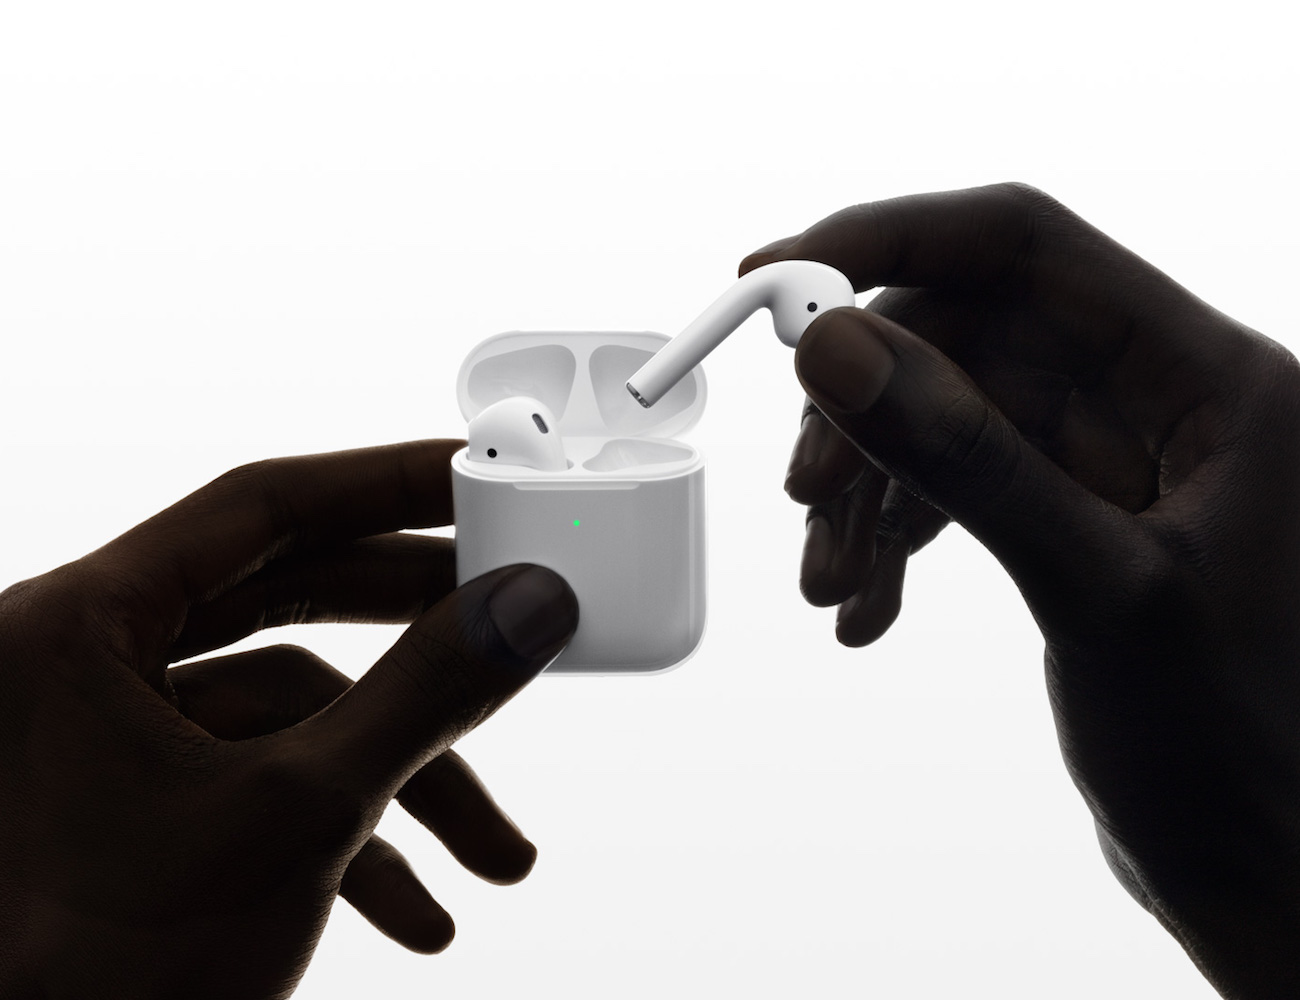 AirPods Gen 2 with Wireless Charging Case and easy access to Siri